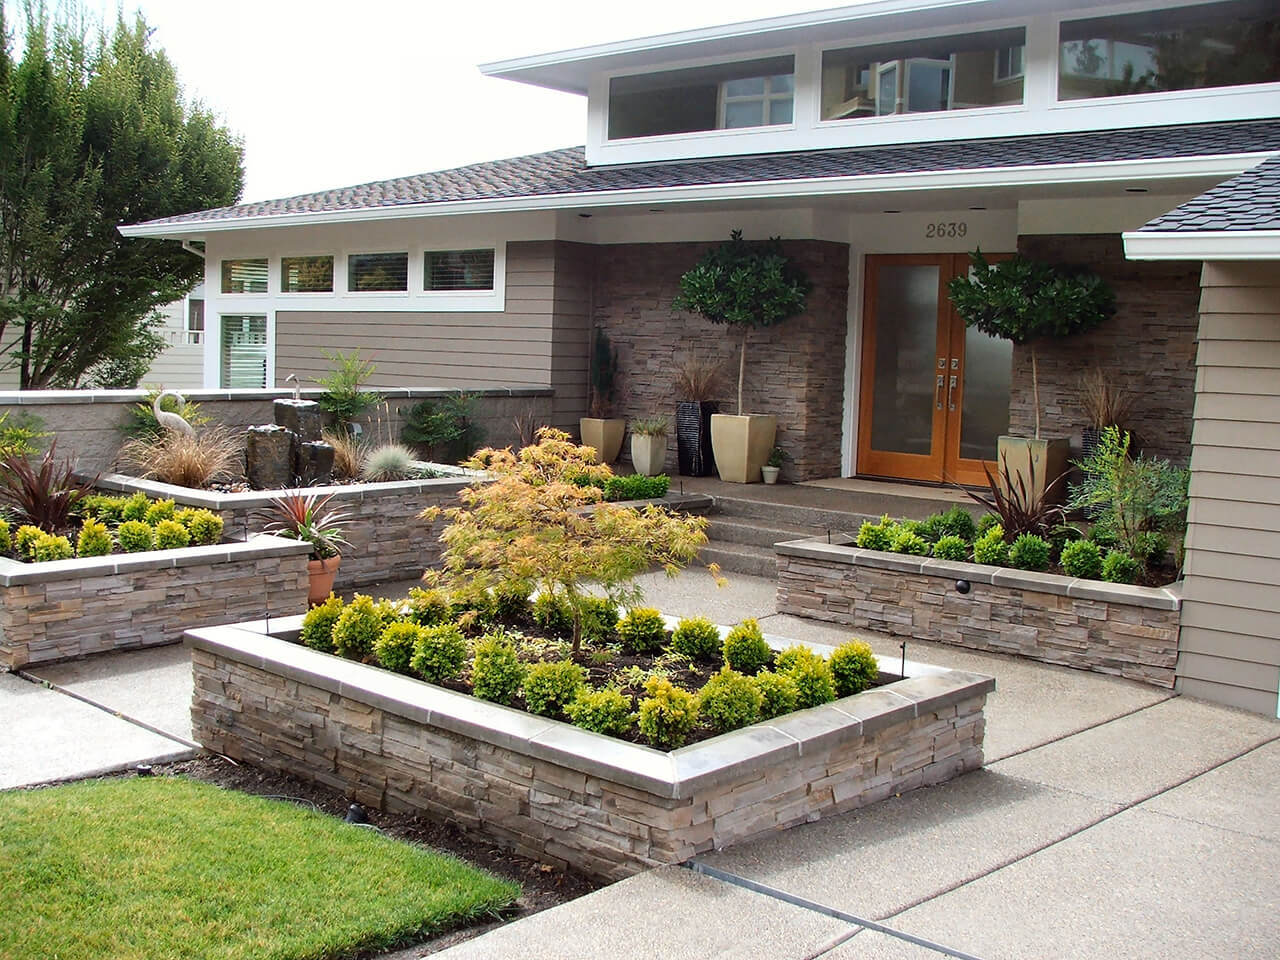 50 Best Front Yard Landscaping Ideas and Garden Designs ... on Patio And Grass Garden Ideas id=64805